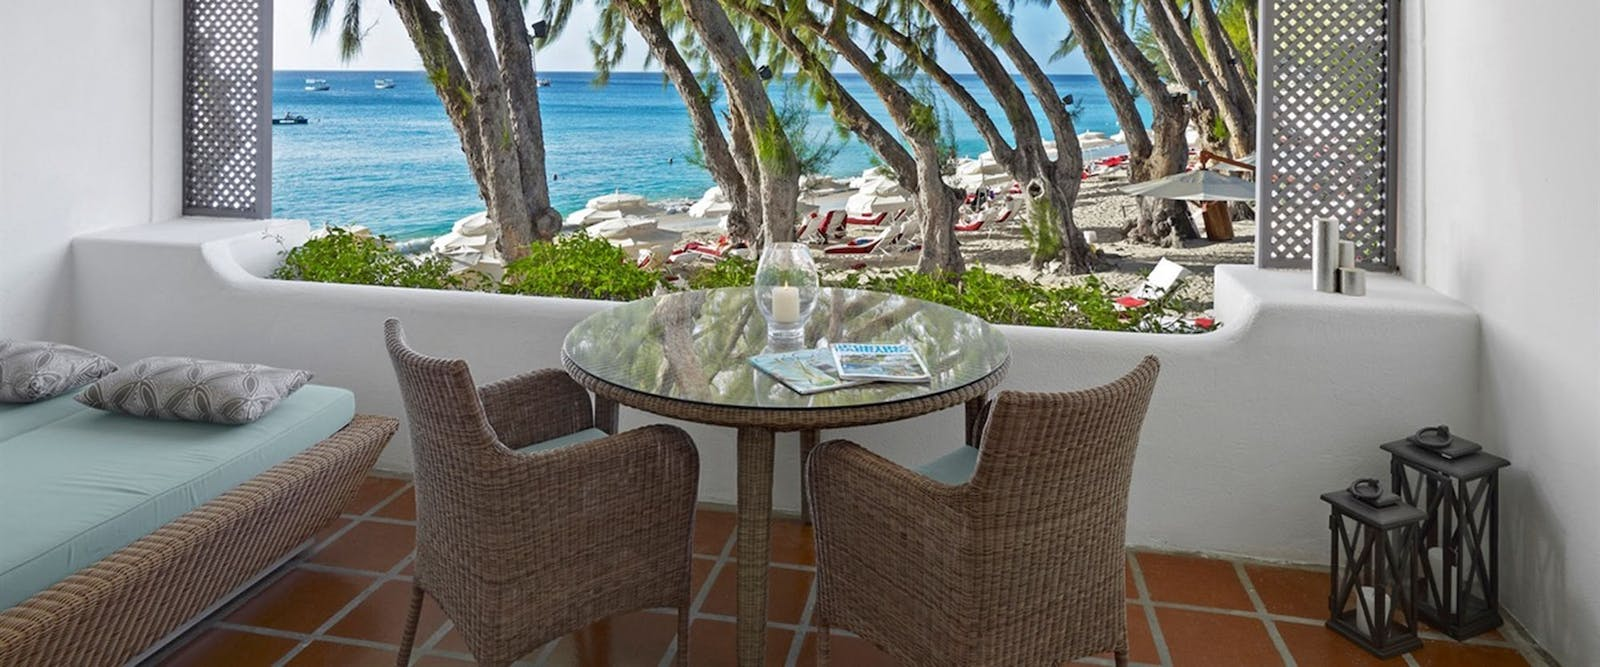 Ocean View Balcony at Colony Club by Elegant Hotels, Barbados, Caribbean